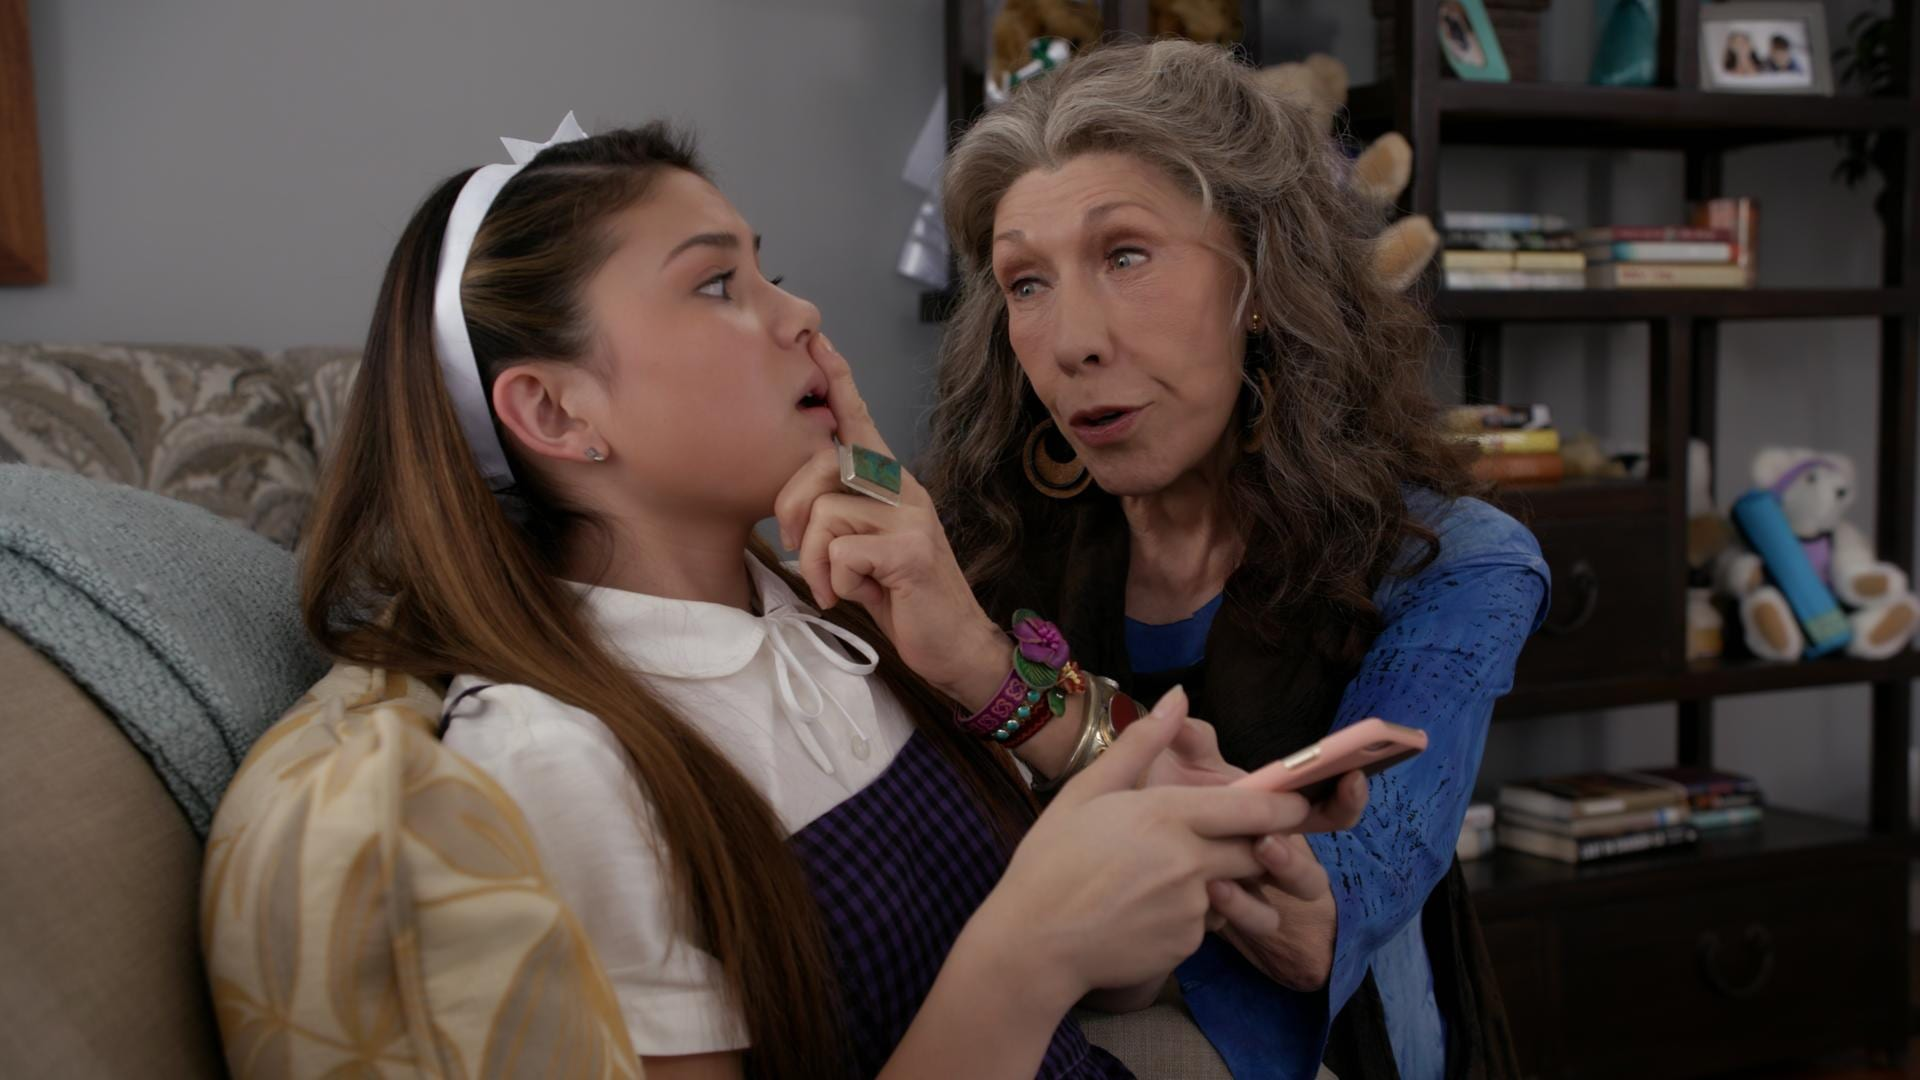 grace and frankie season 4 episode 5 s04e05 openload watch free episodes online. Black Bedroom Furniture Sets. Home Design Ideas